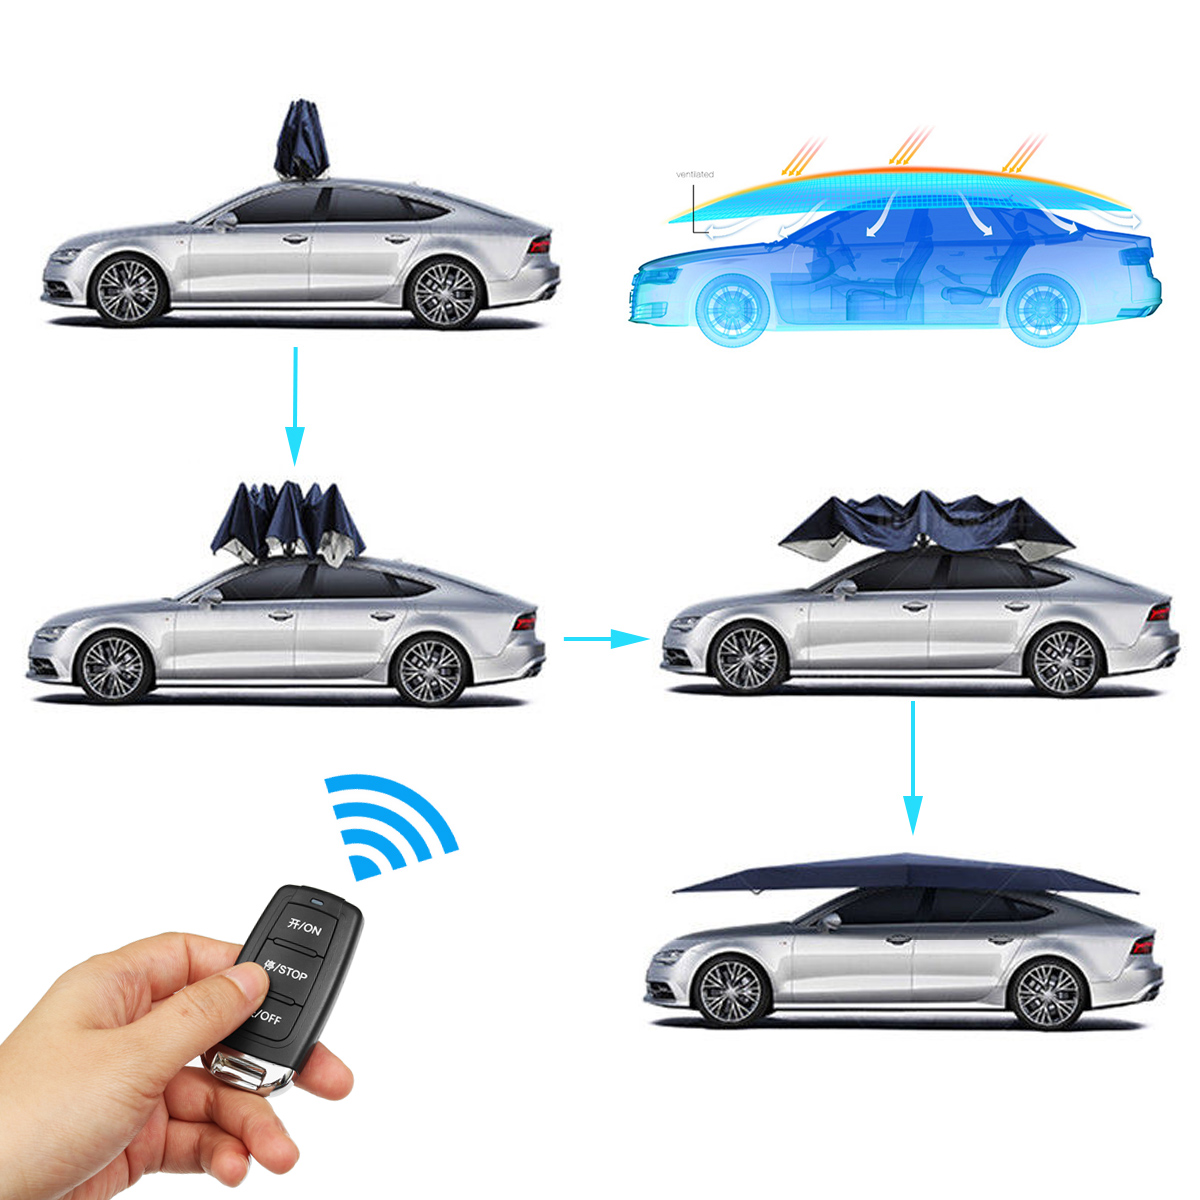 цена на Portable Full Automatic Car Cover Umbrella Outdoor Car Tent Umbrella Roof Cover UV Protection Kits Sun Shade with Remote Control